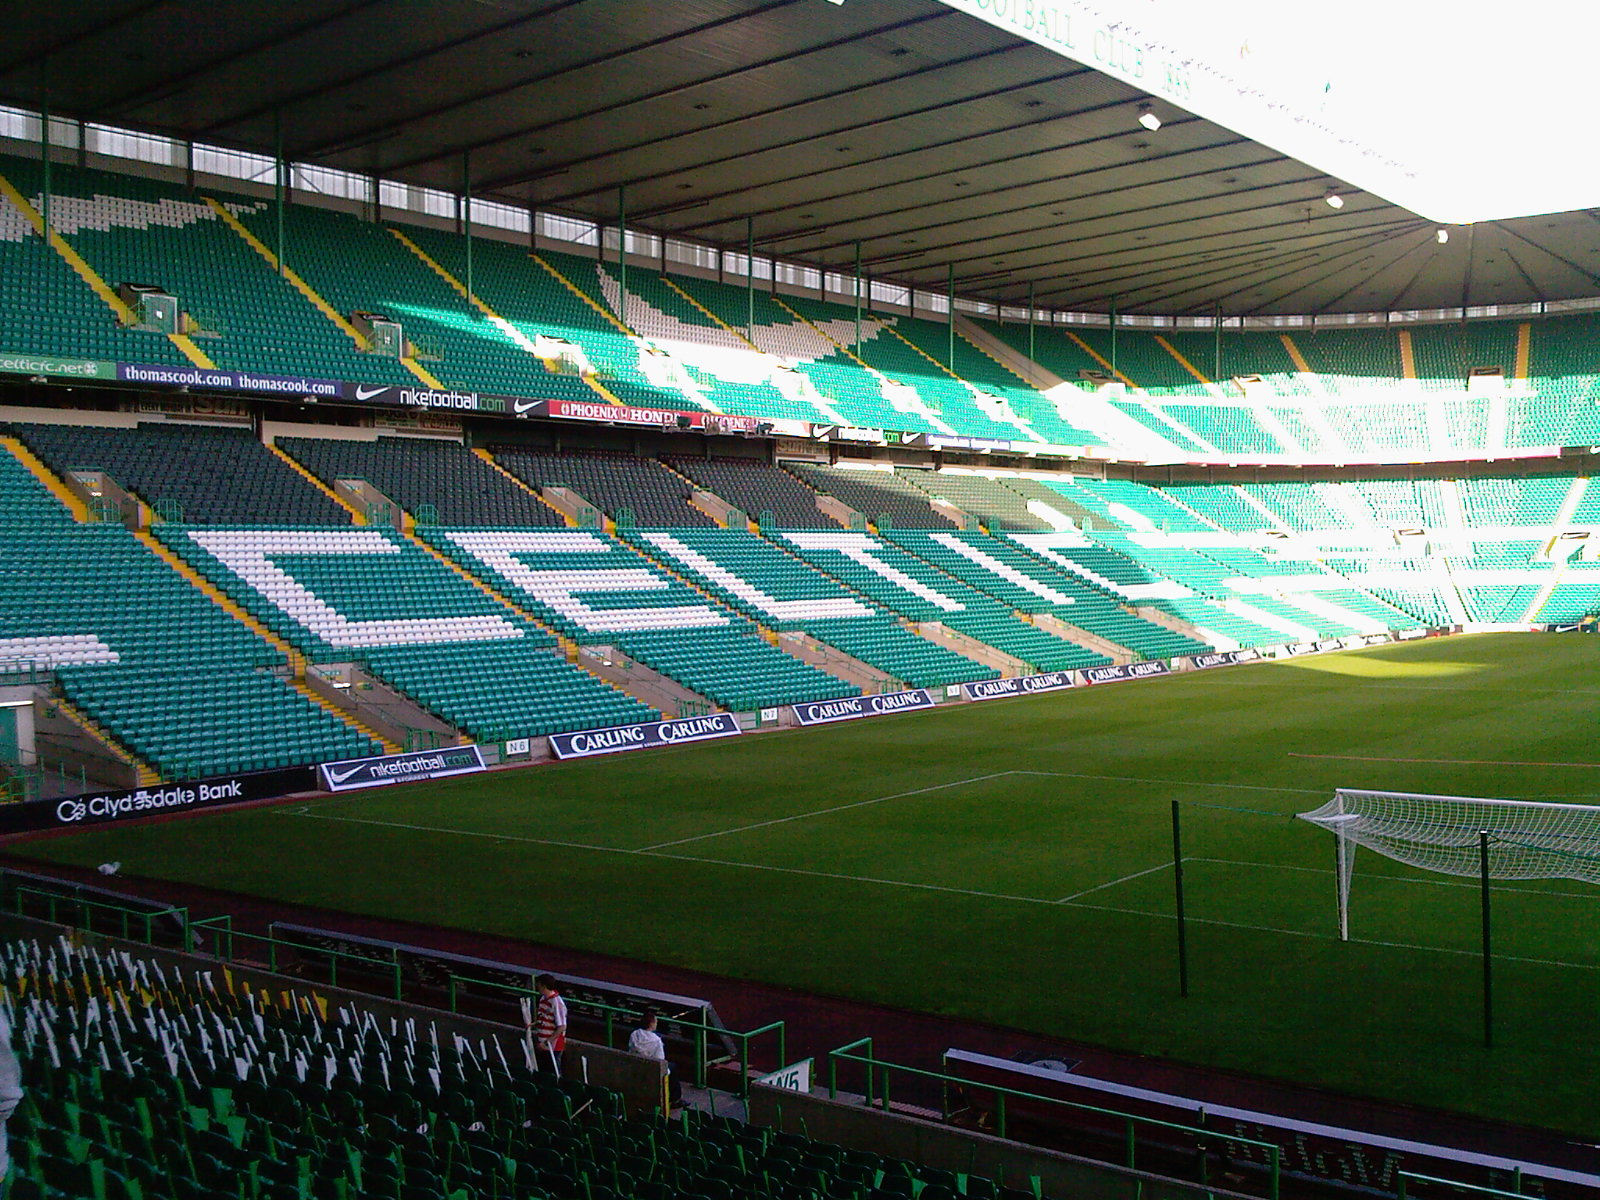 CELTIC – A VERY STALE CLUB